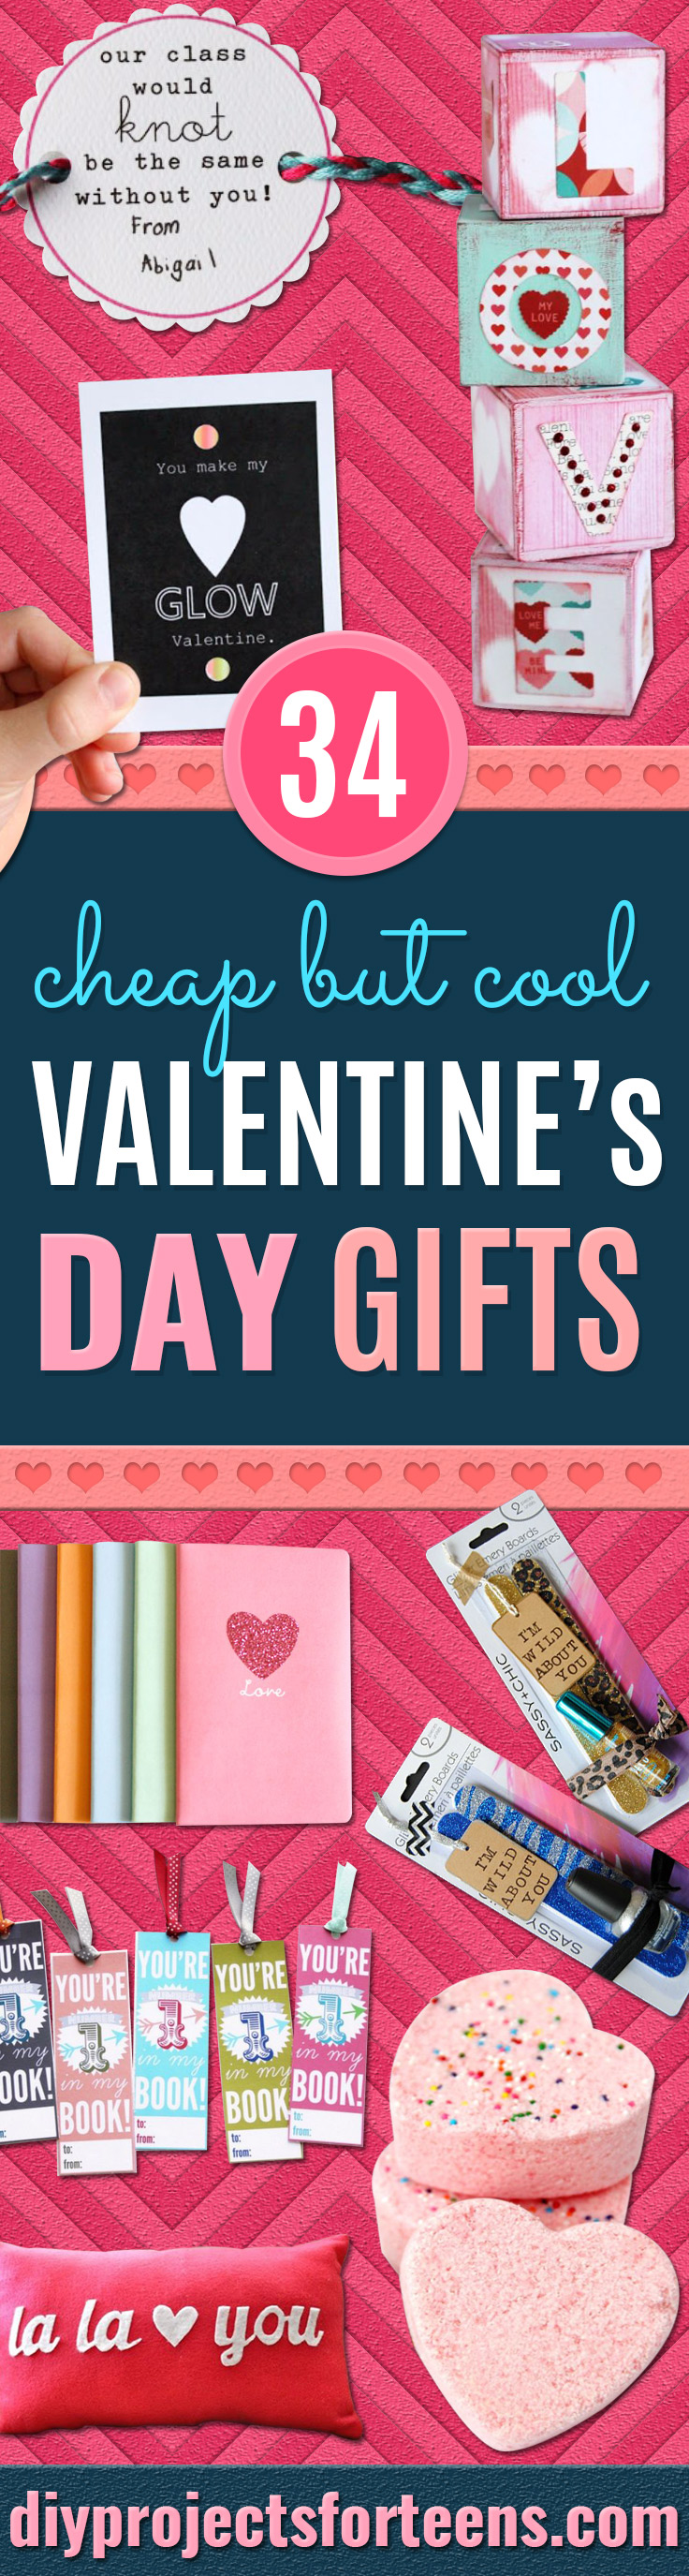 Cheap DIY Valentine's Day Gift Ideas - Make These Easy and Inexpensive Crafts and Valentine Projects - Cute Dollar Store Ideas, Tutorials for Making Jars, Gift Boxes, Pink Red and Heart Shaped Decor - Creative Ways To Say I Love You to Your BFF, Boyfriend, Girlfriend, Husband, Wife and Kids http://diyprojectsforteens.com/cheap-diy-valentines-gifts